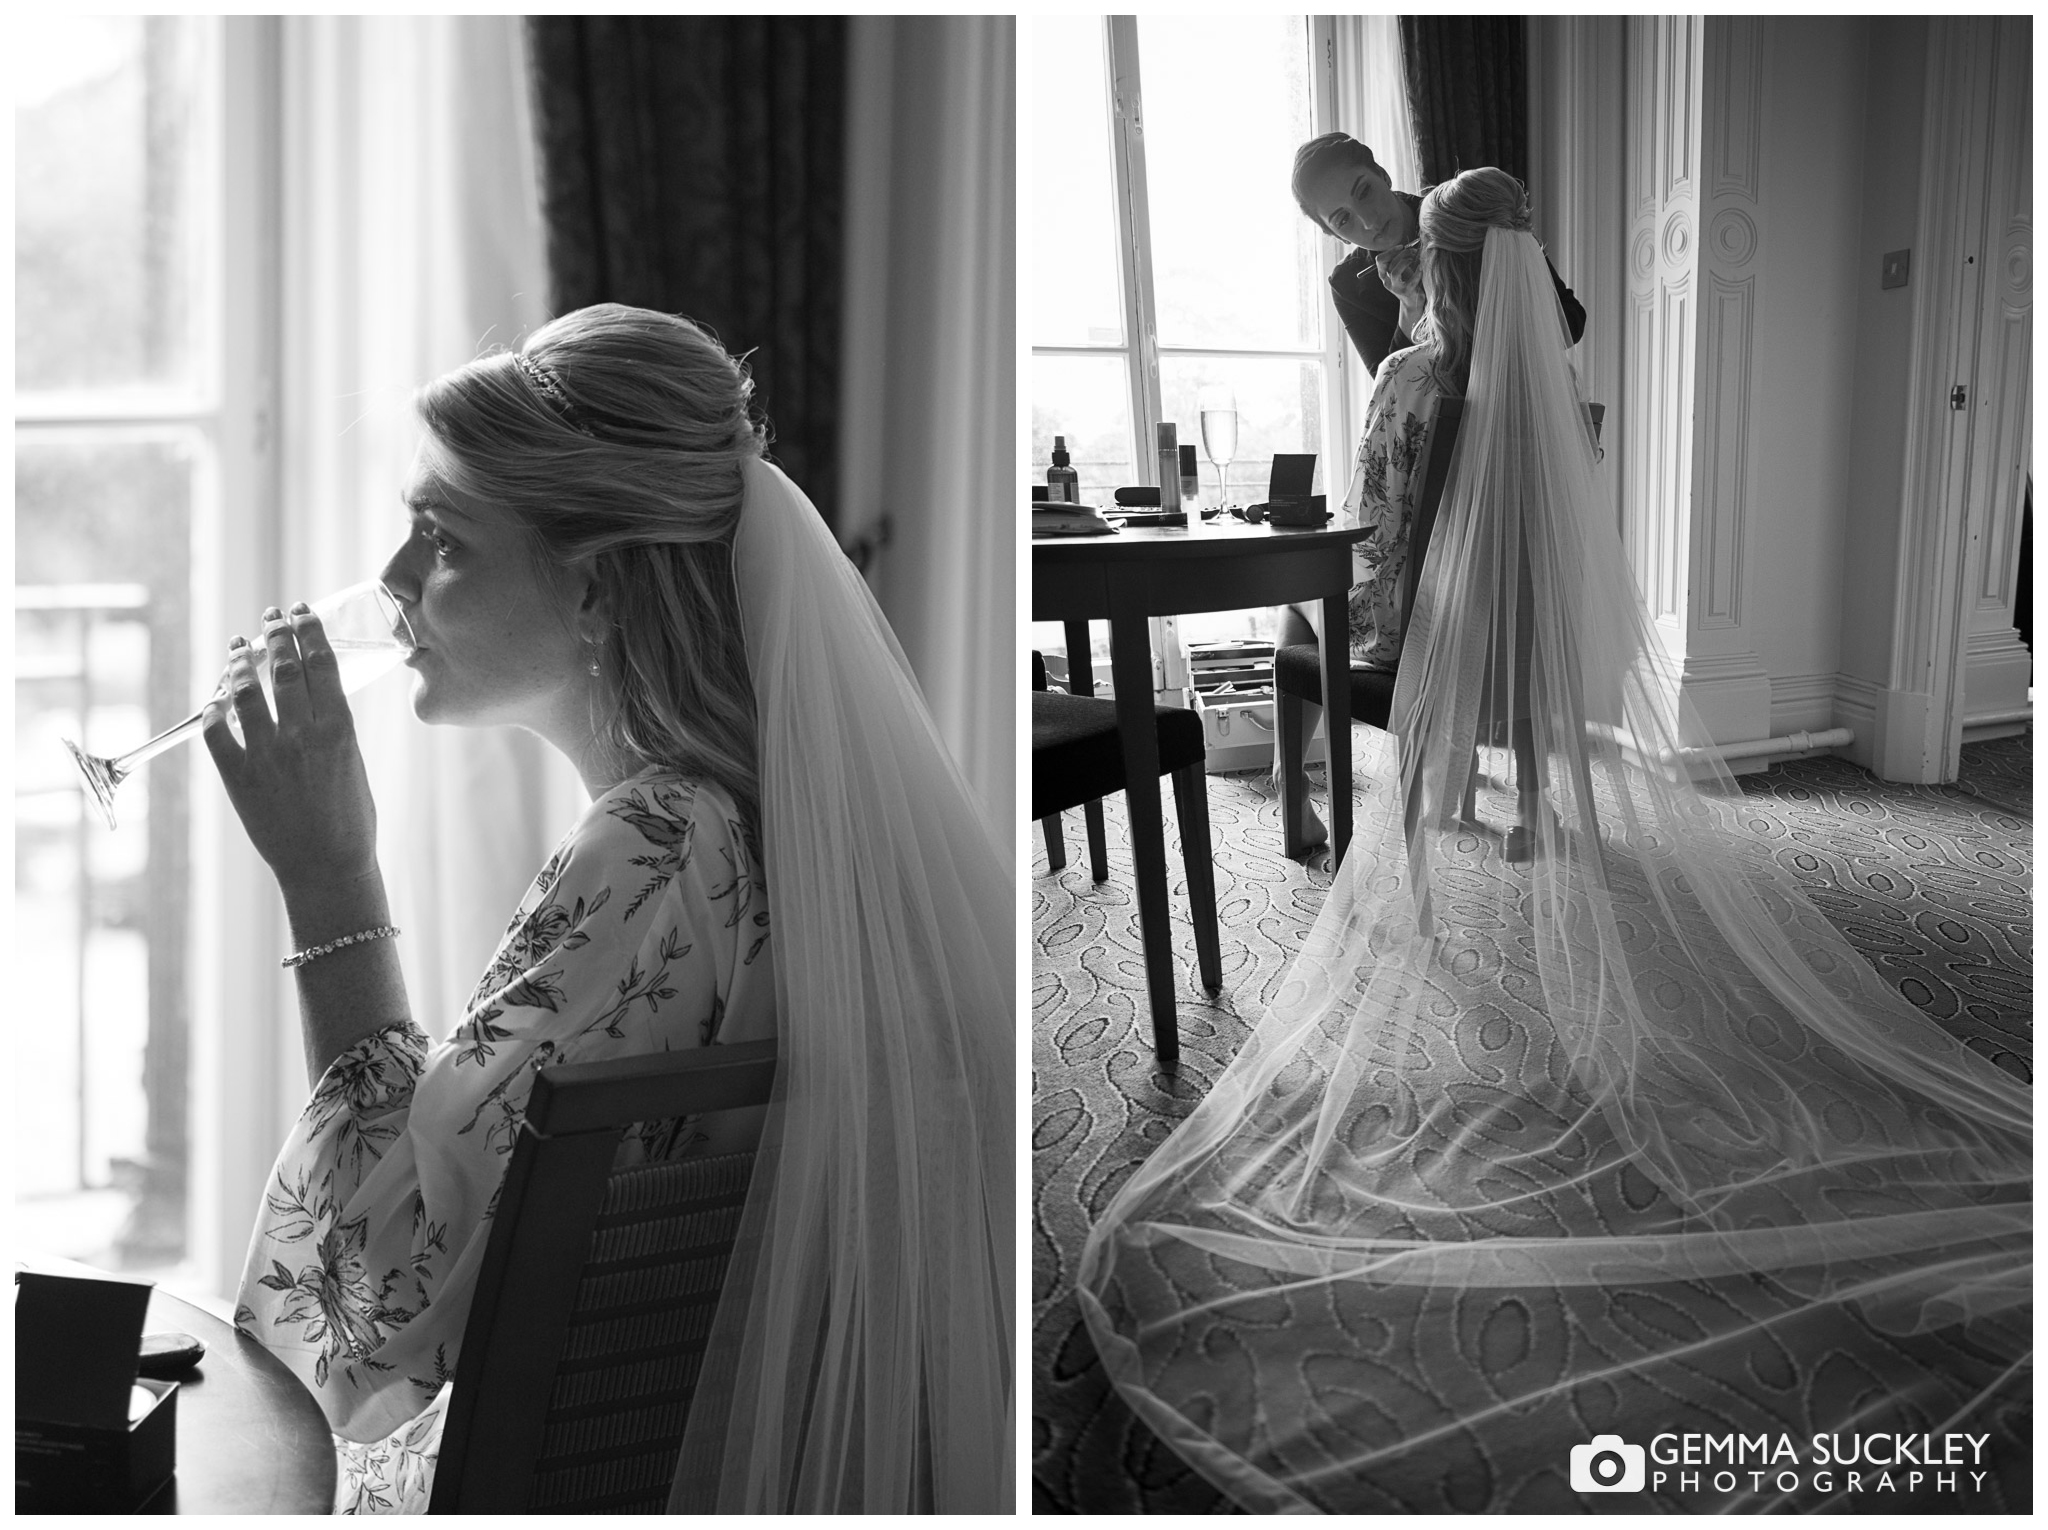 bridal-preparation-in-harrogate-©gemmasuckleyphotography.jpg